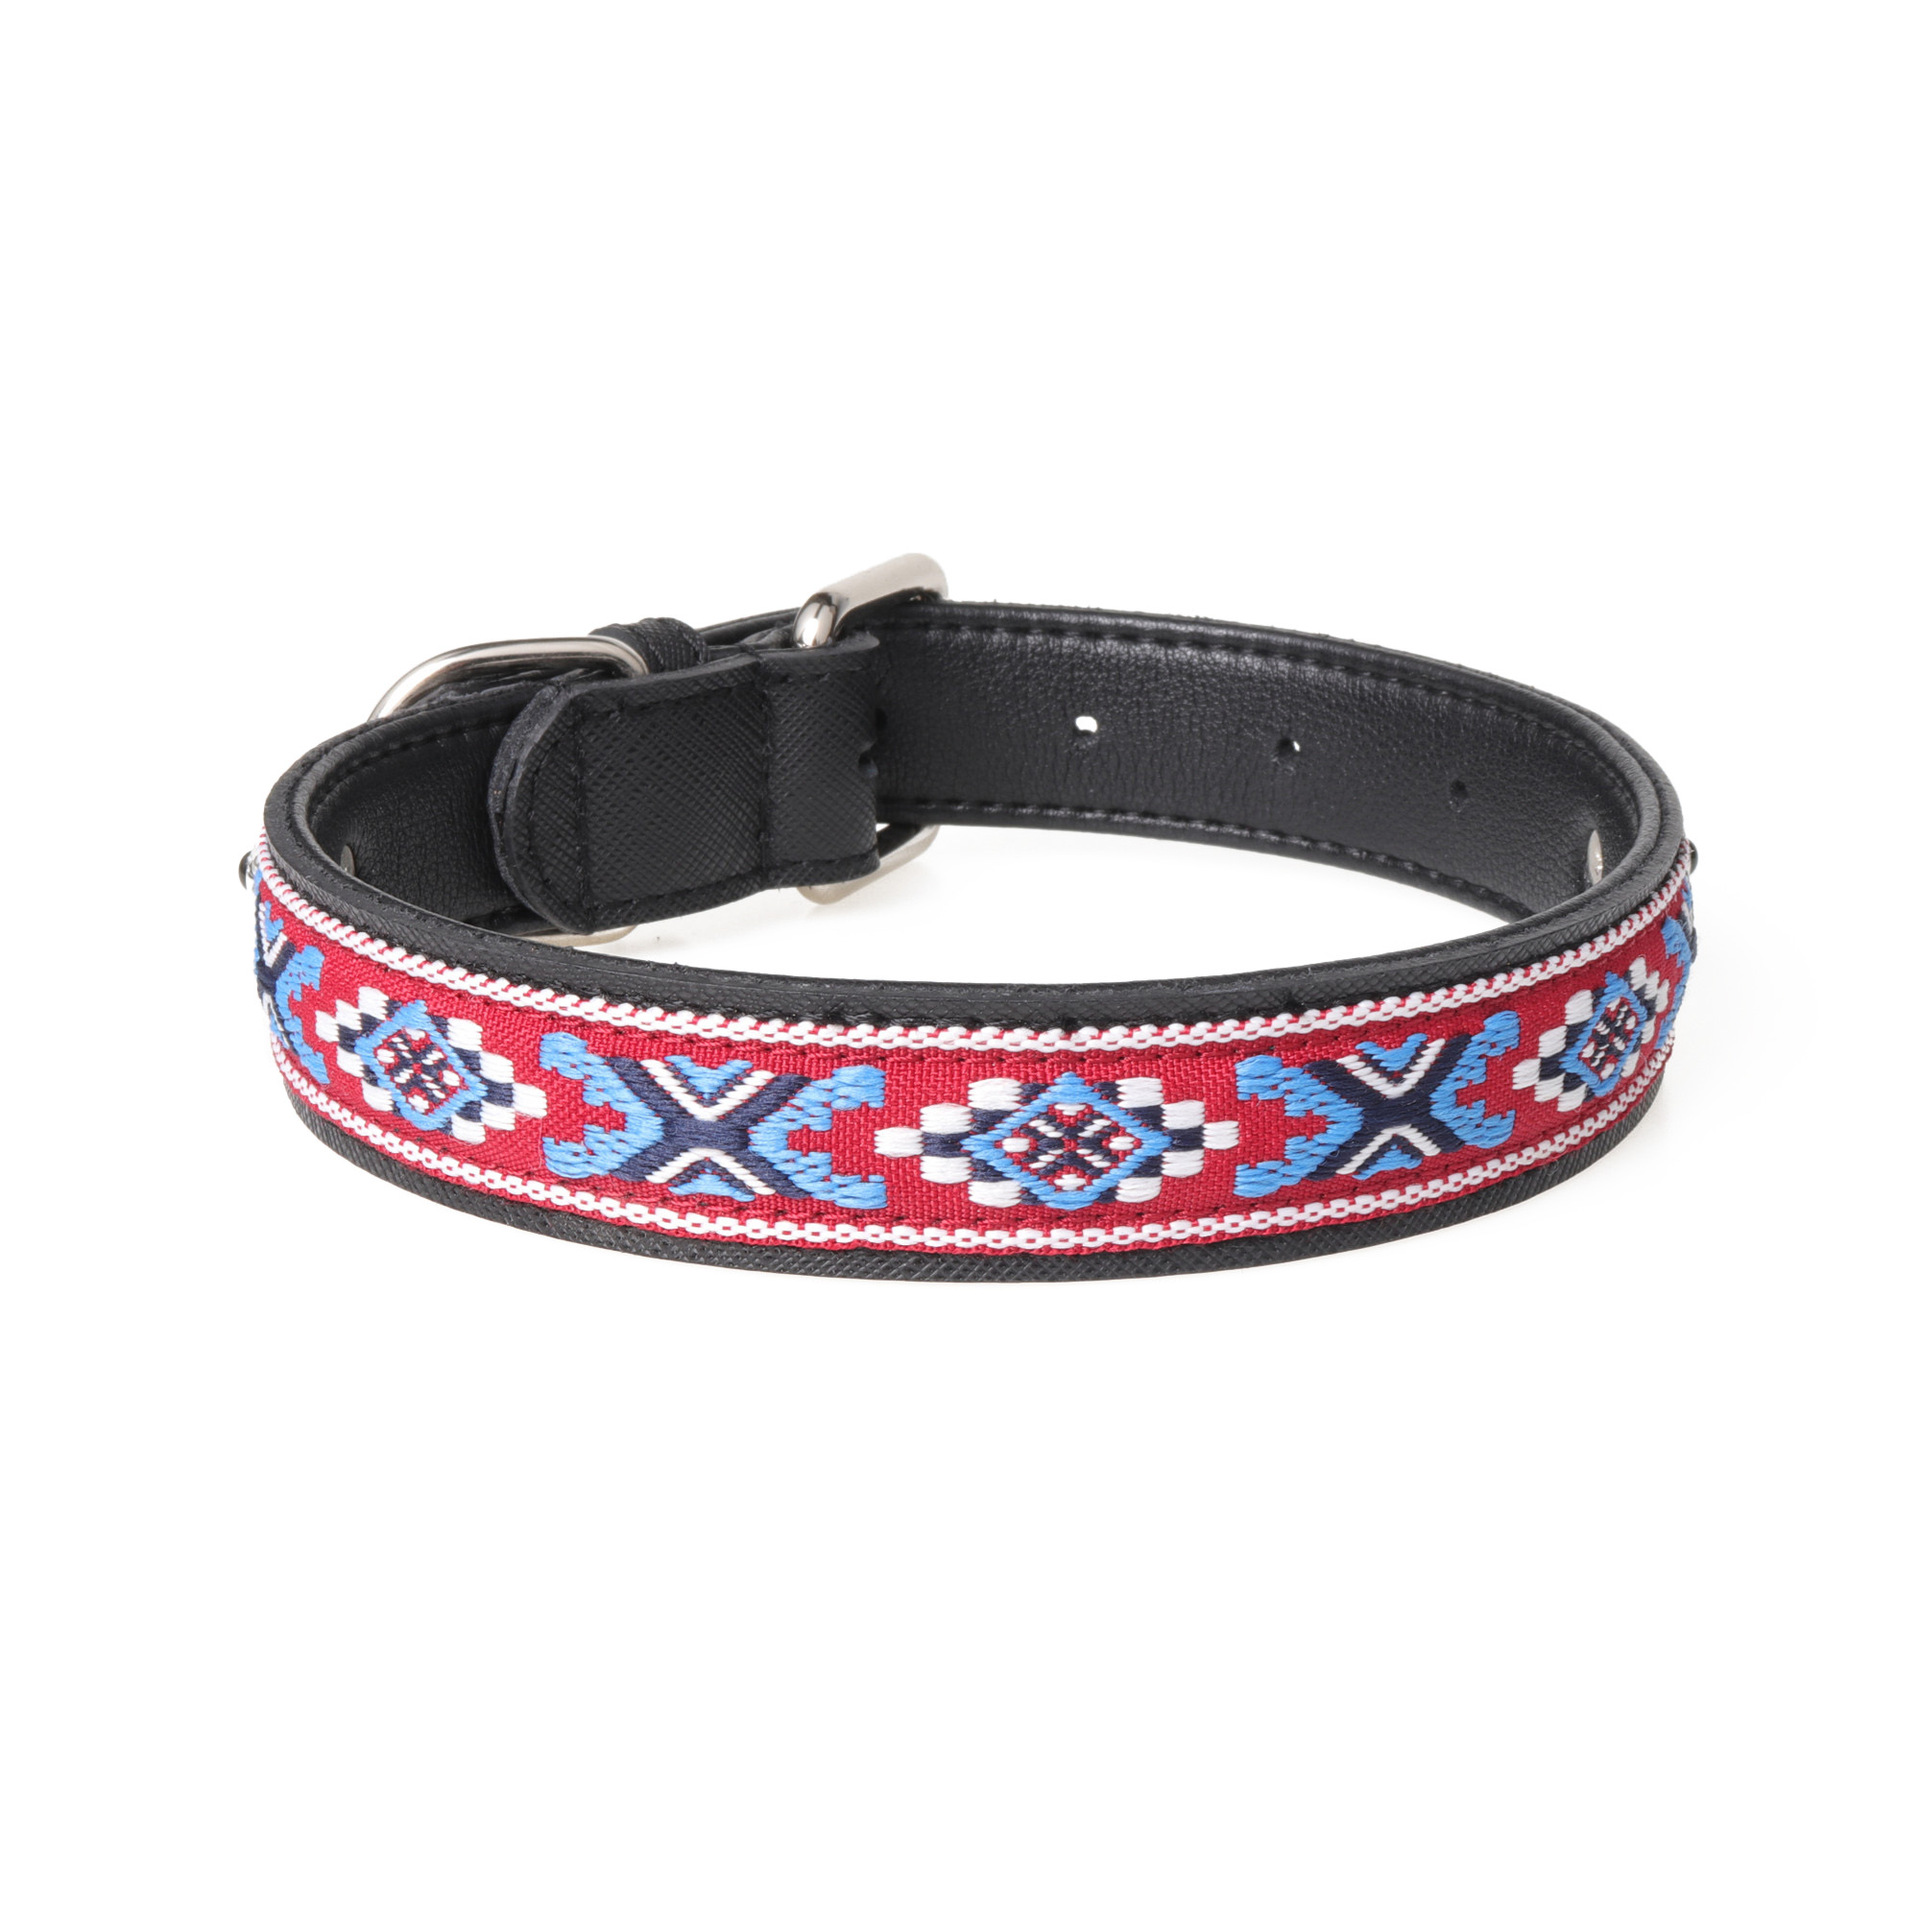 Amin Lattice New Products Cross Border For Genuine Leather Pet Collar Large Dogs Neck Ring Manufacturers Direct Selling